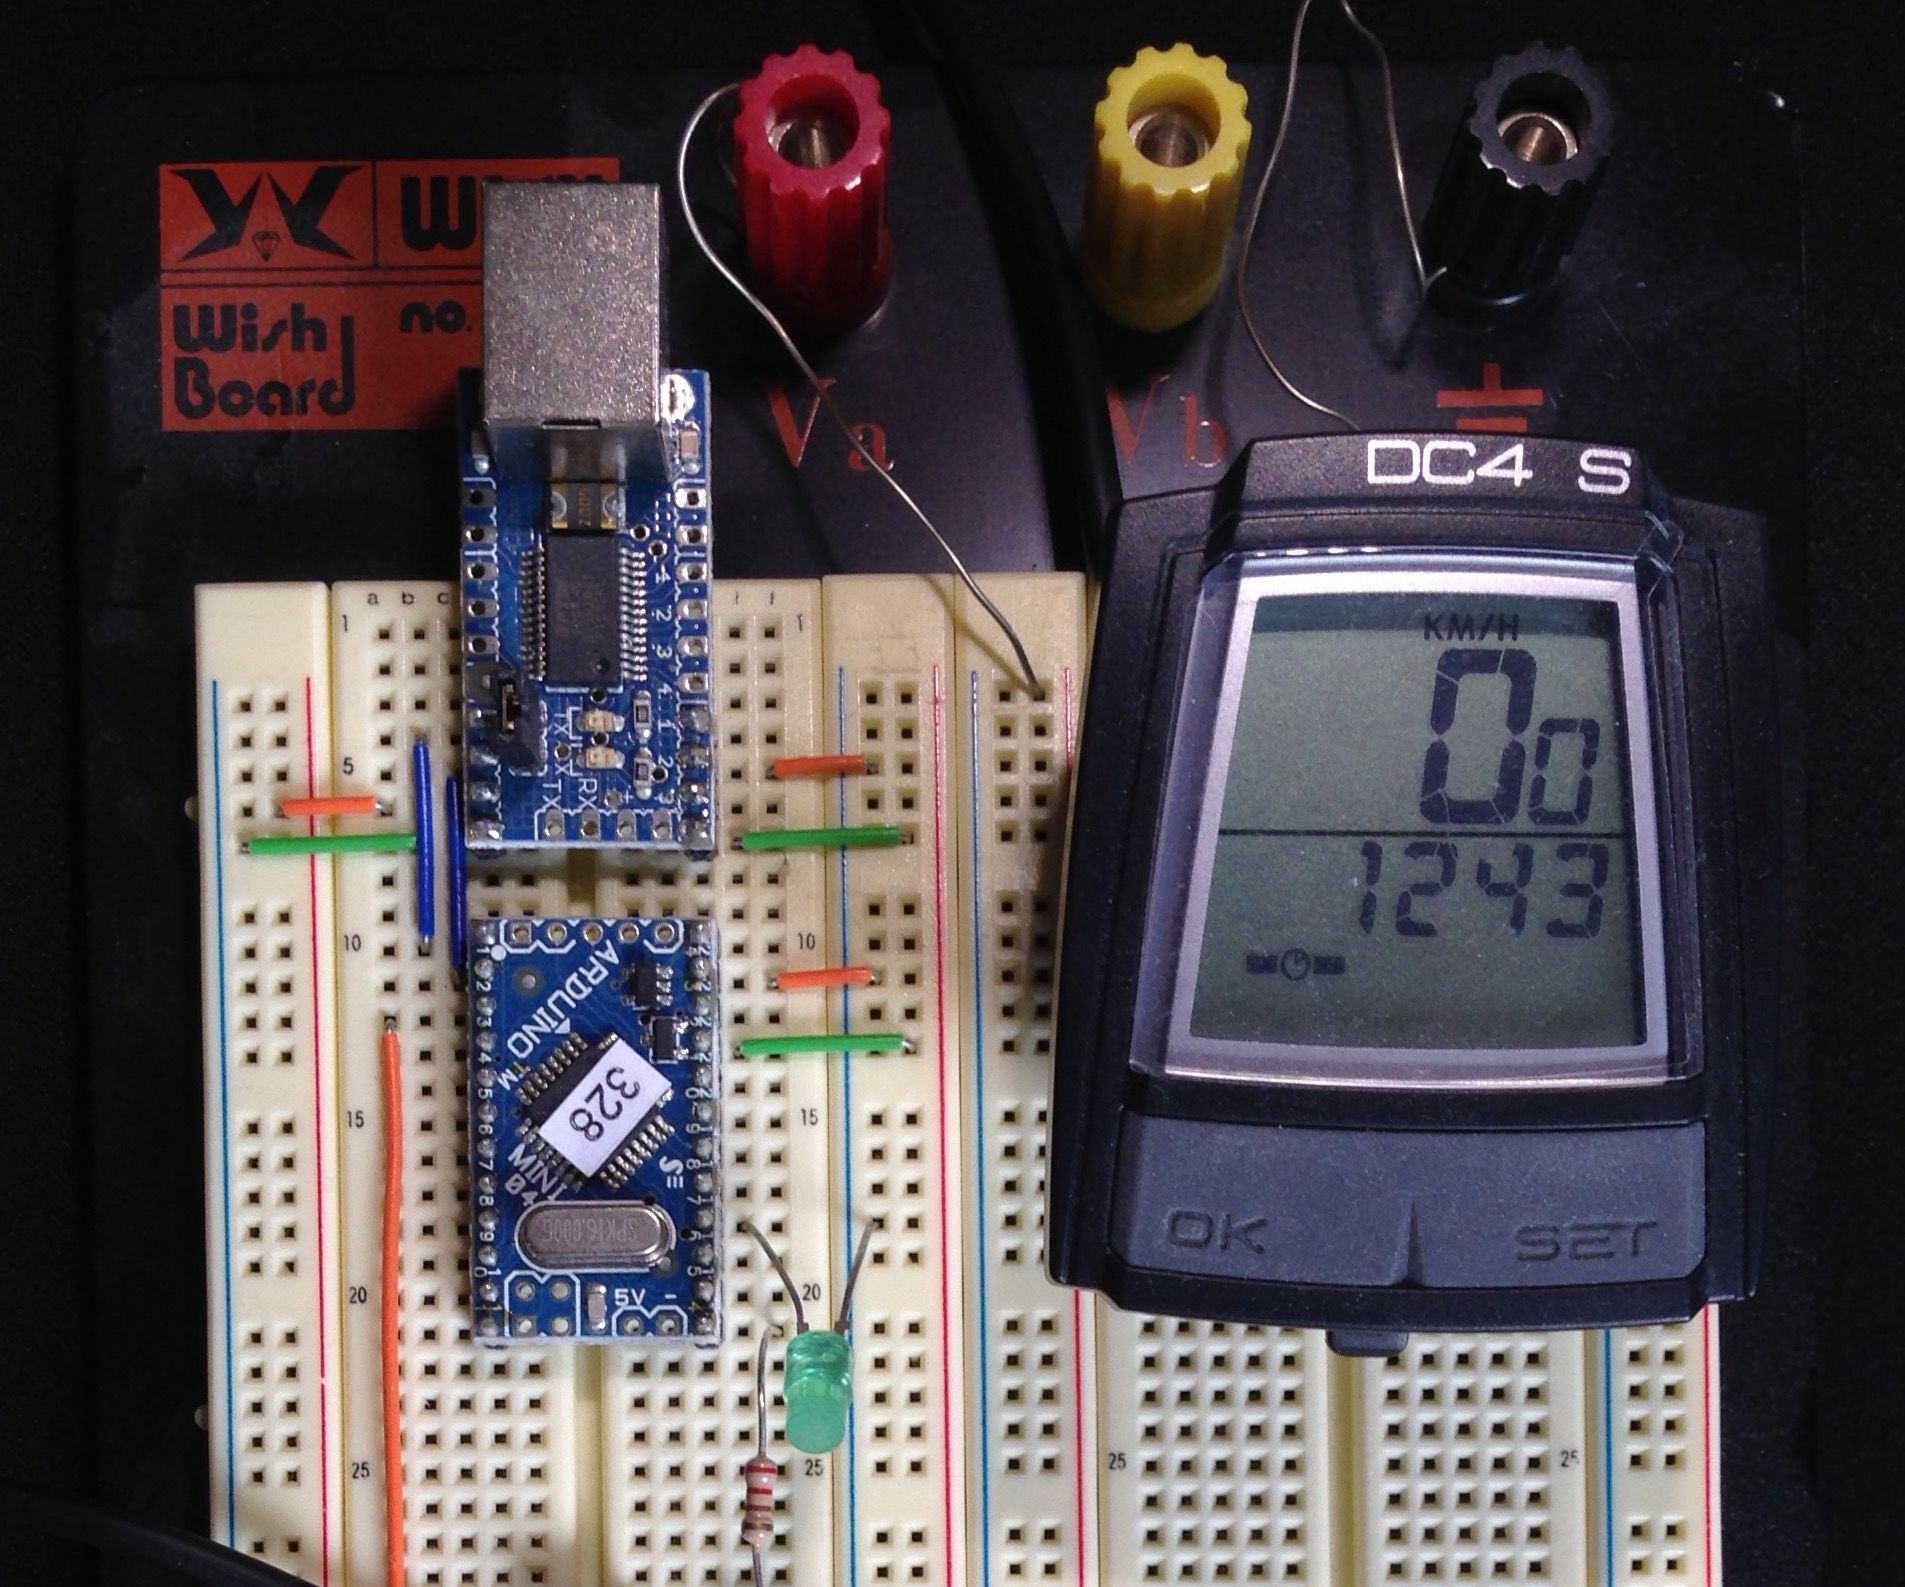 Building a cheap two-digit display for Arduino